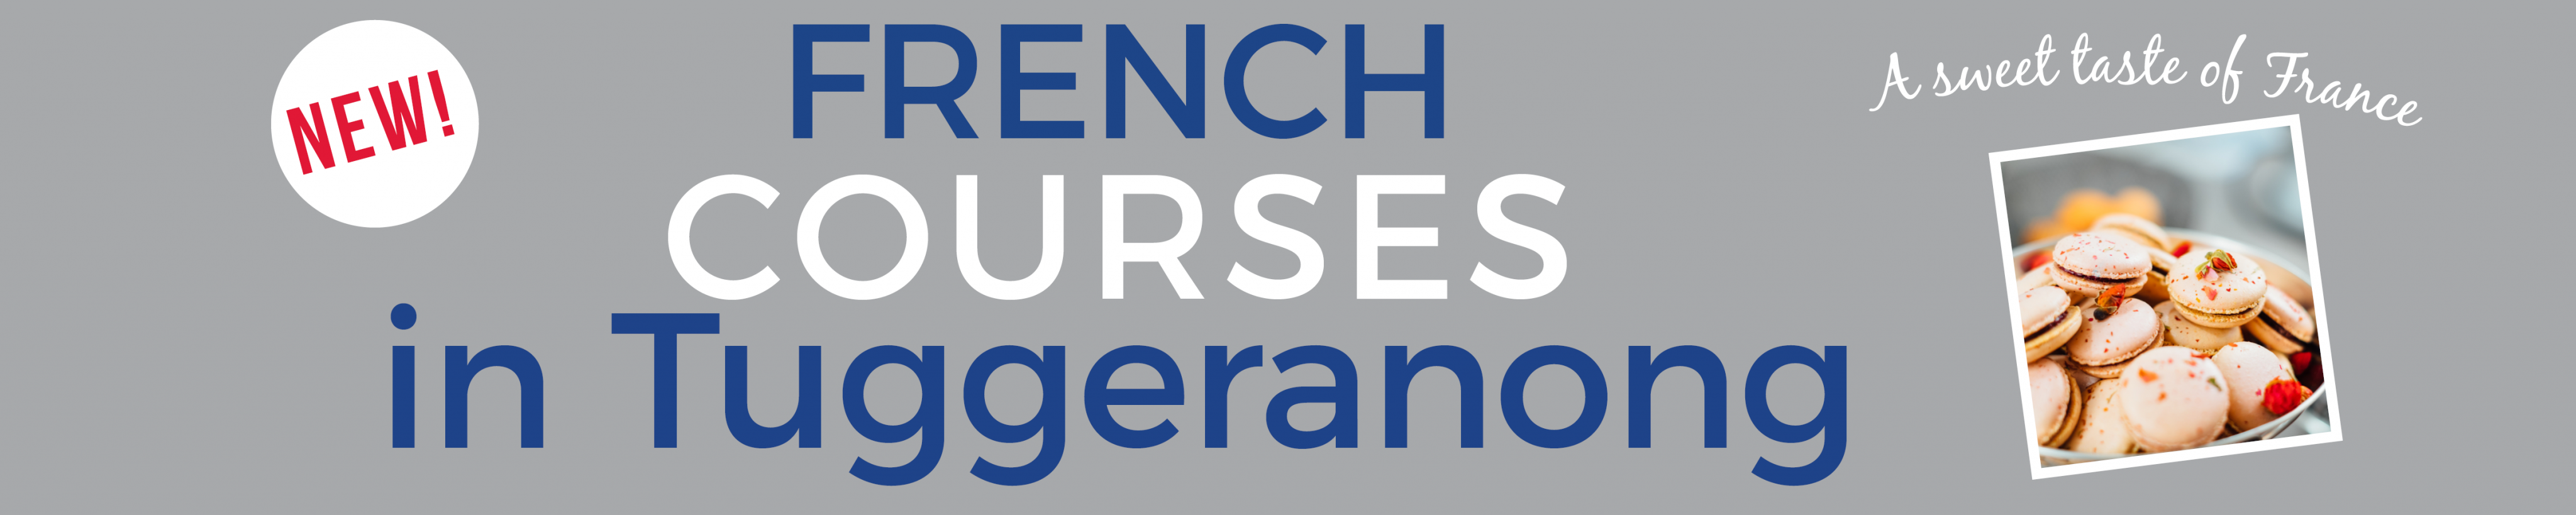 FRENCH COURSES IN TUGGERANONG